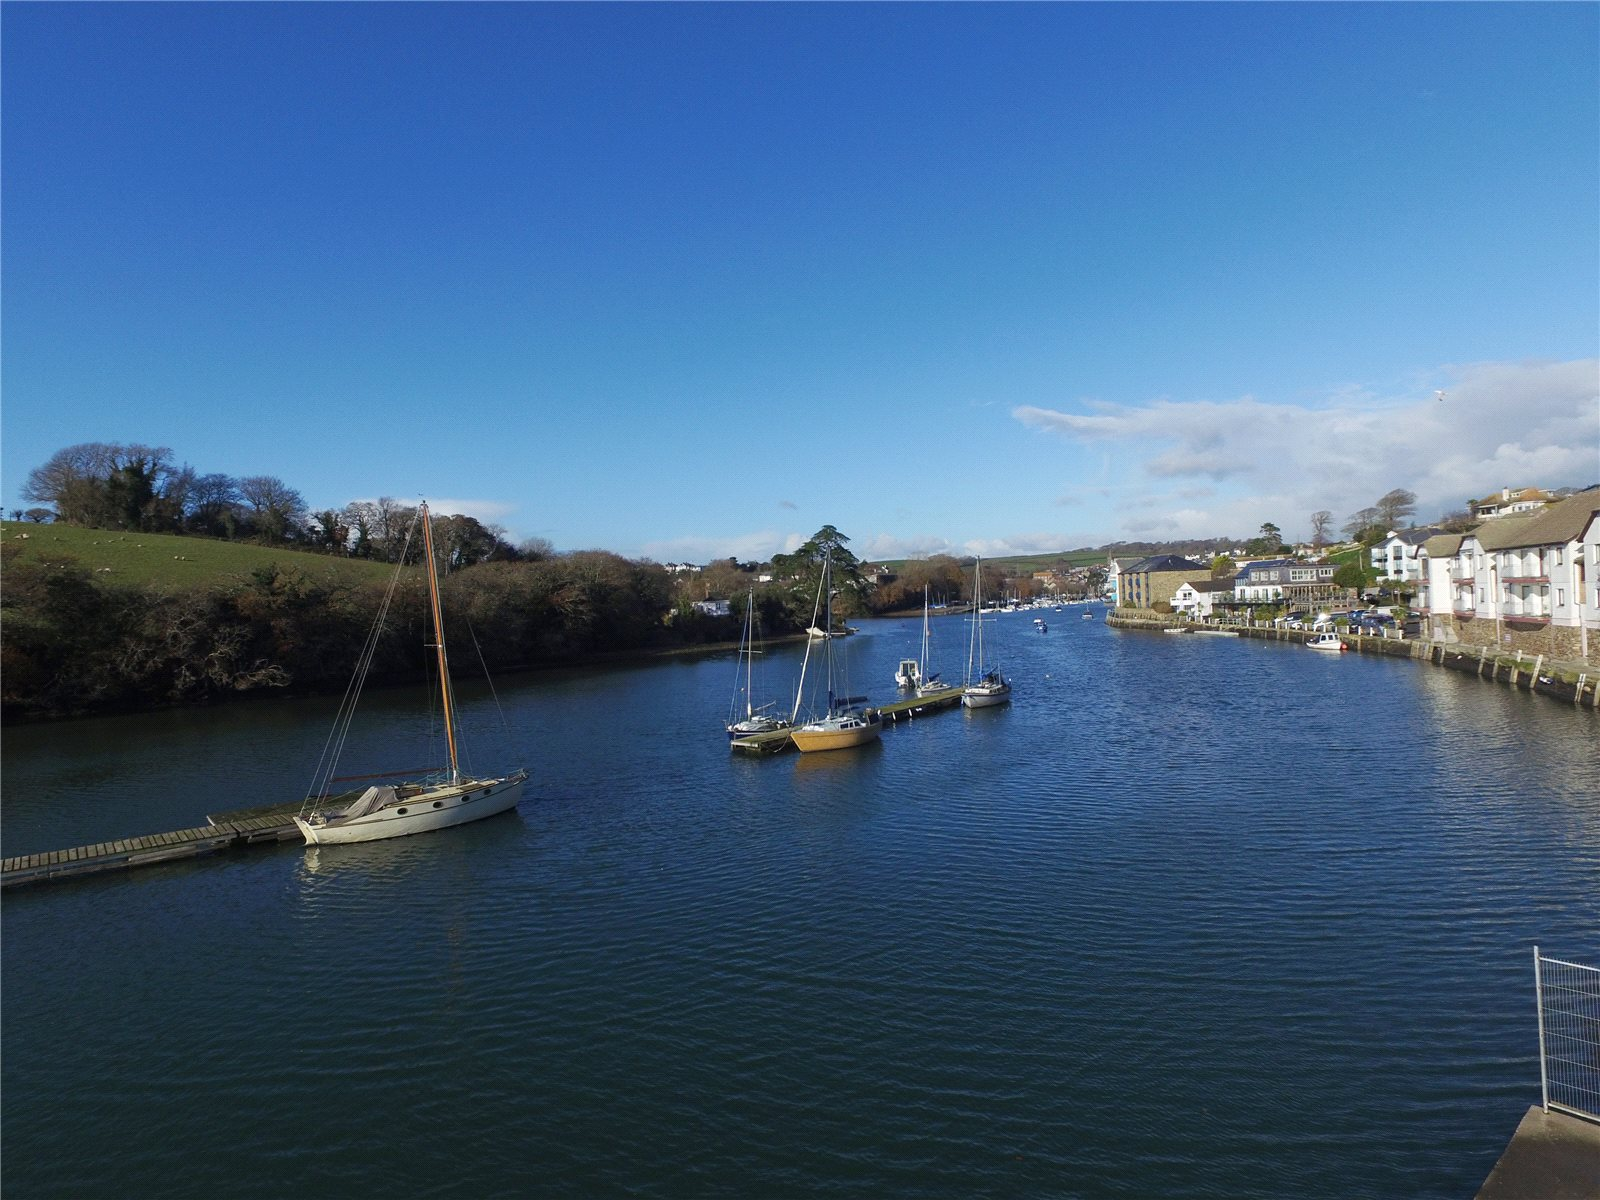 独户住宅 为 销售 在 The Boatyard, Embankment Road, Kingsbridge, Devon, TQ7 Kingsbridge, 英格兰